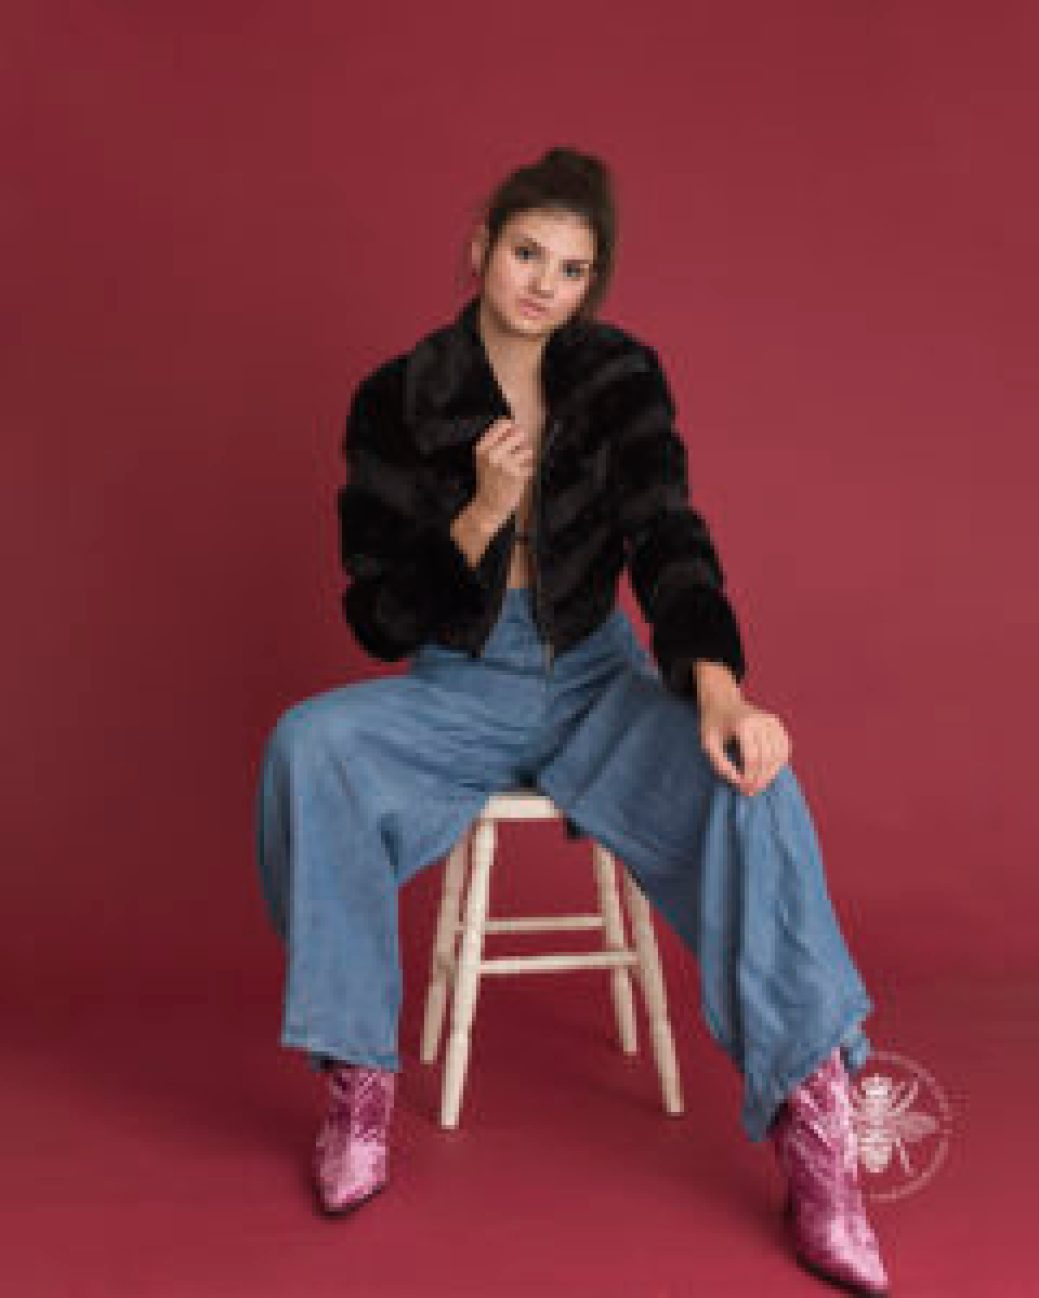 senior girl poses on a chair in front of a red background wearing a high fashion look. She wears a fur jacket, flowing oversized denim pants, and pink velvet boots